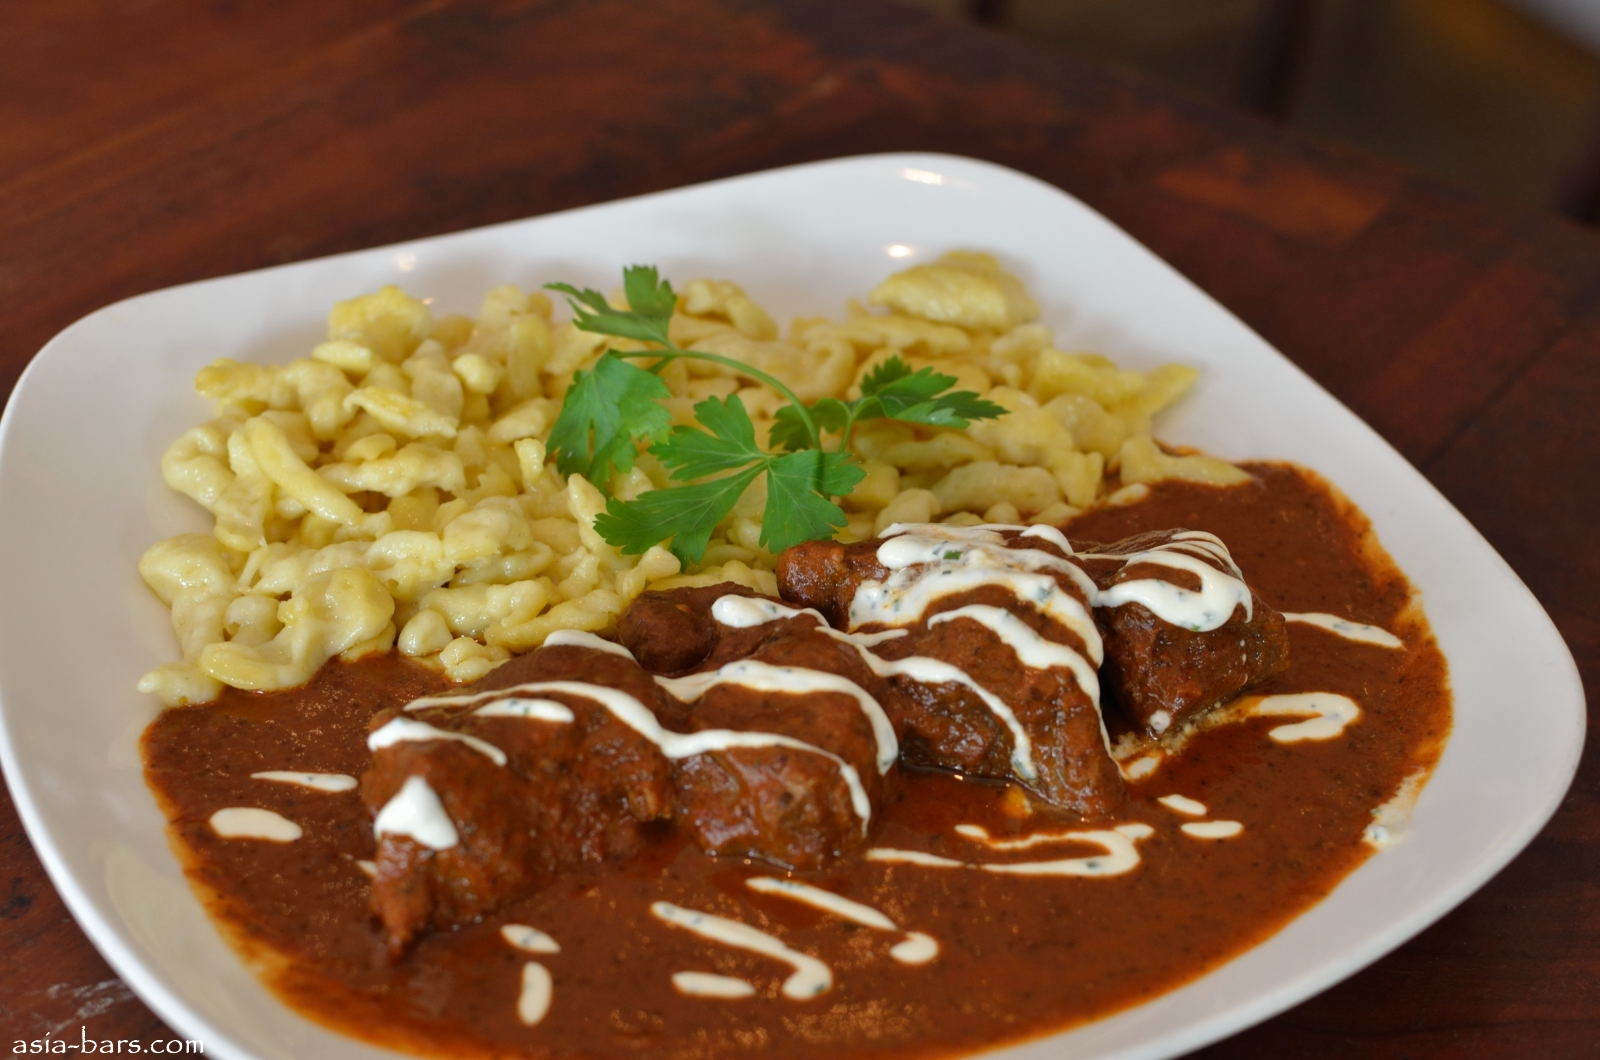 sauerkraut tina rupp veal goulash veal goulash veal goulash to the ...